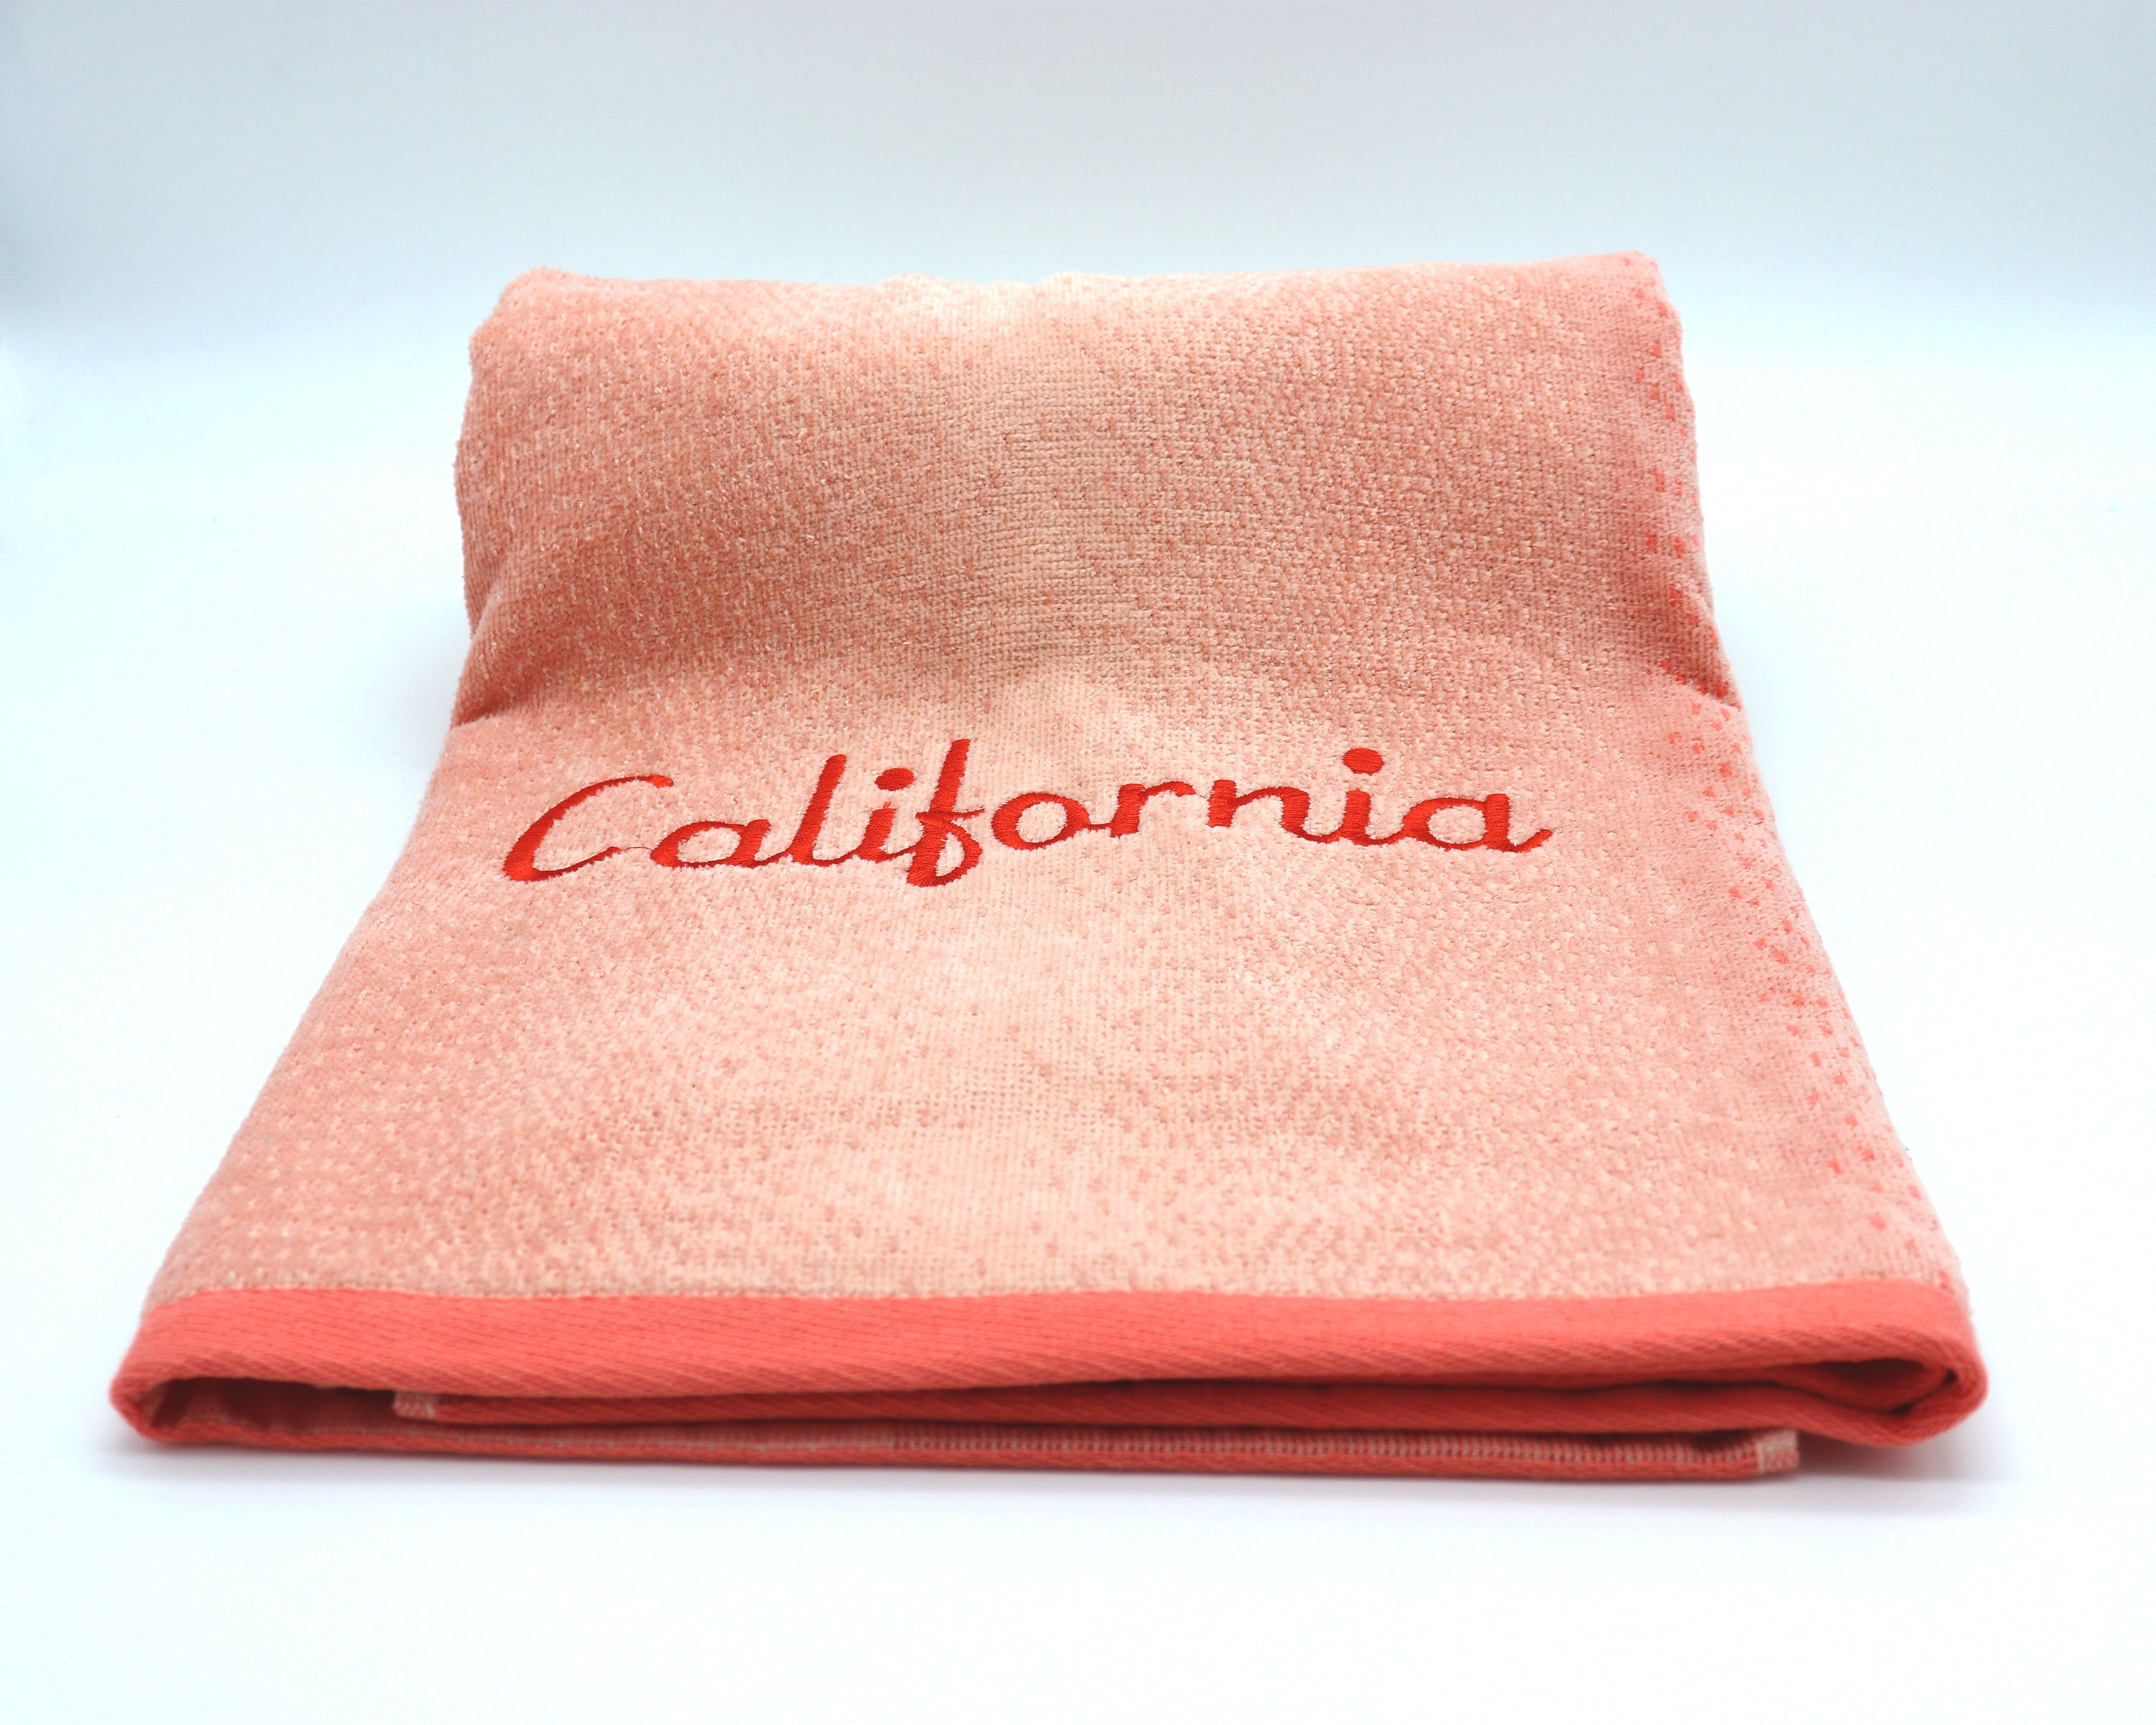 California peach large beach  bath towel. Beautiful memento keep sake gift. Great for vacations or gift to a friend.